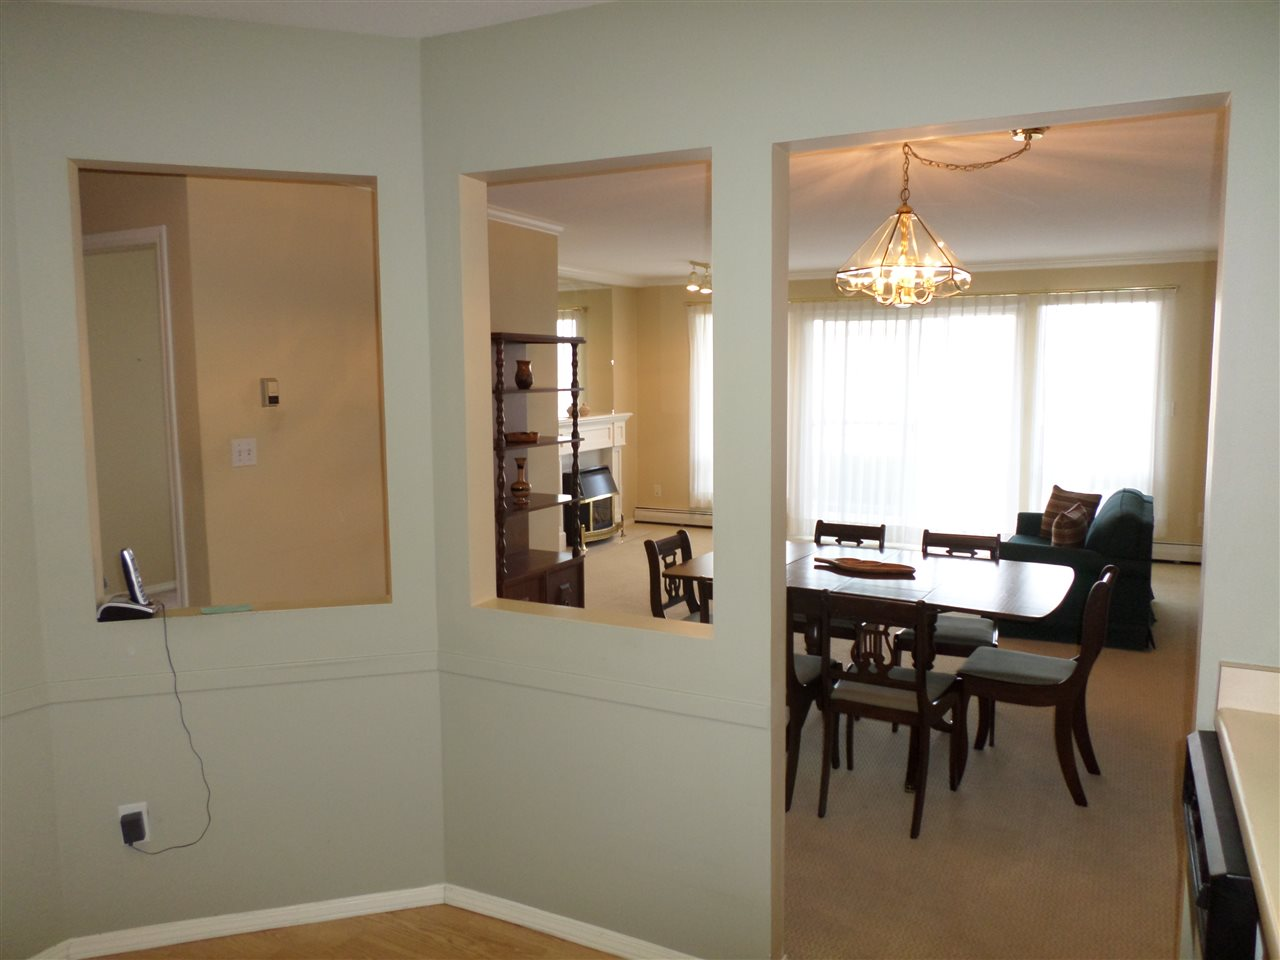 "Photo 7: 105 2491 GLADWIN Road in Abbotsford: Abbotsford West Condo for sale in ""LAKEWOOD GARDENS"" : MLS® # R2122538"